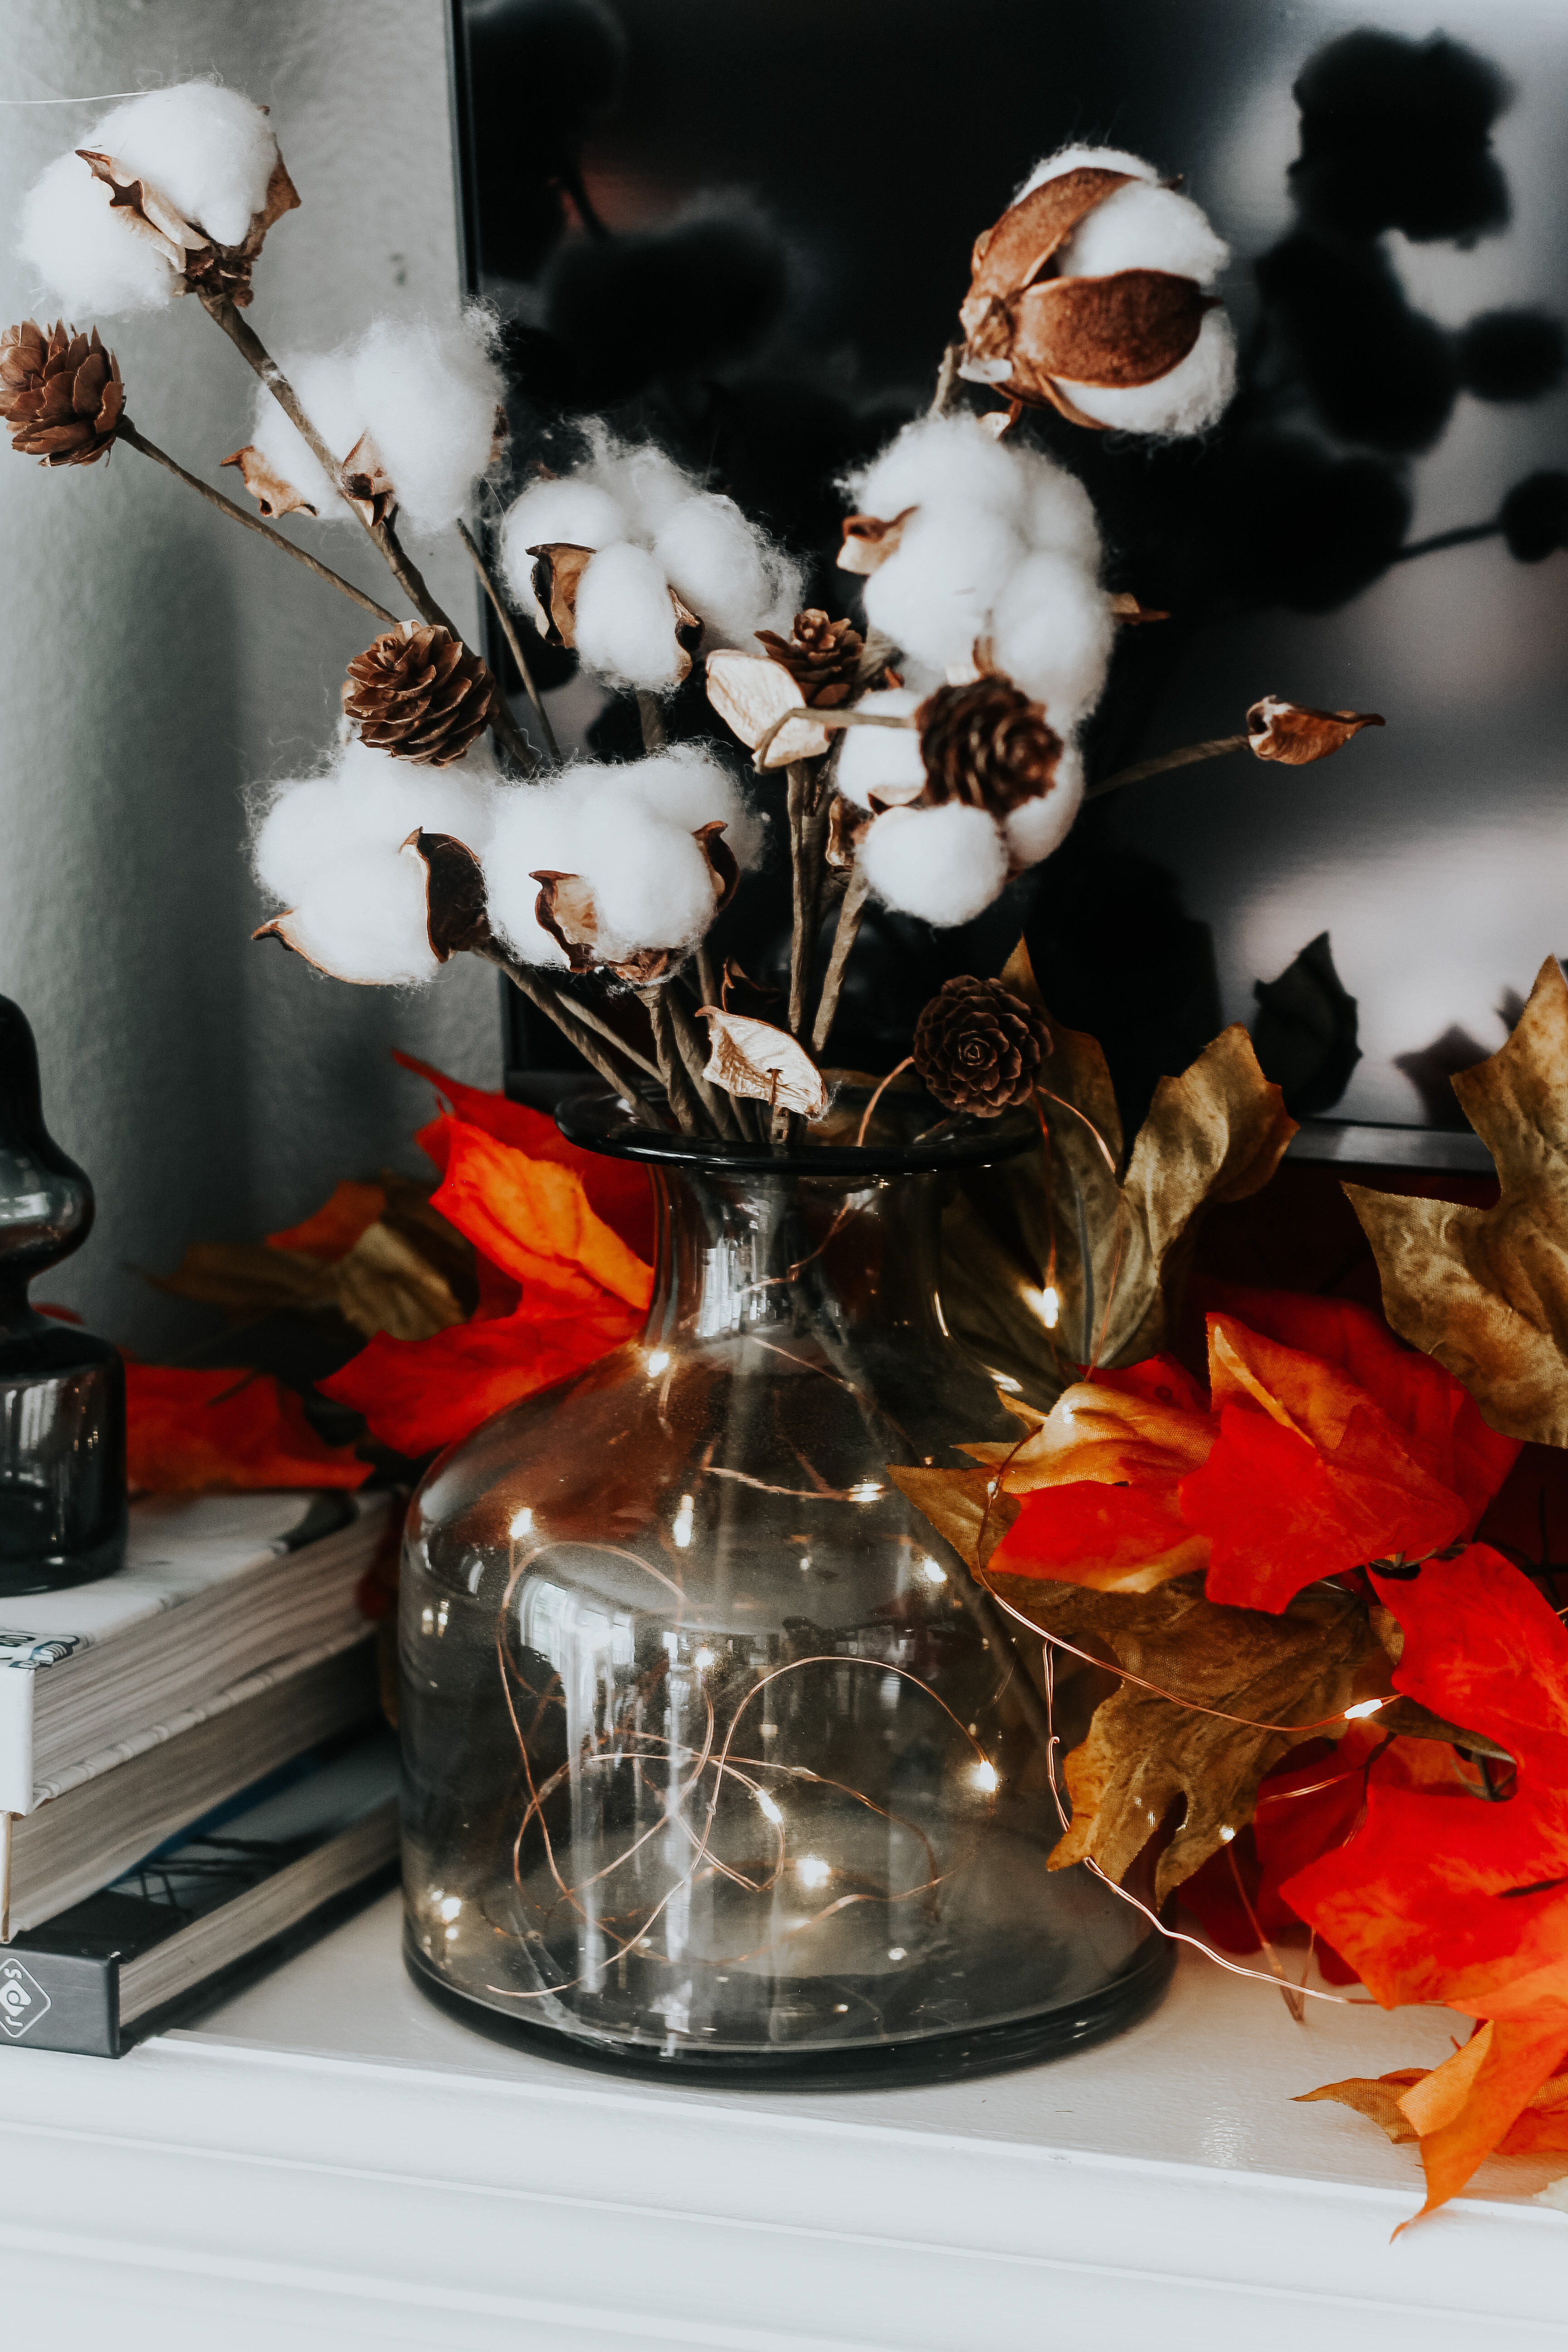 Twinkle Fairy Lights On Copper Wire For Fall Vase With Cotton Stems Fall Mantel Decor This Is Our Bliss This Is Our Bliss